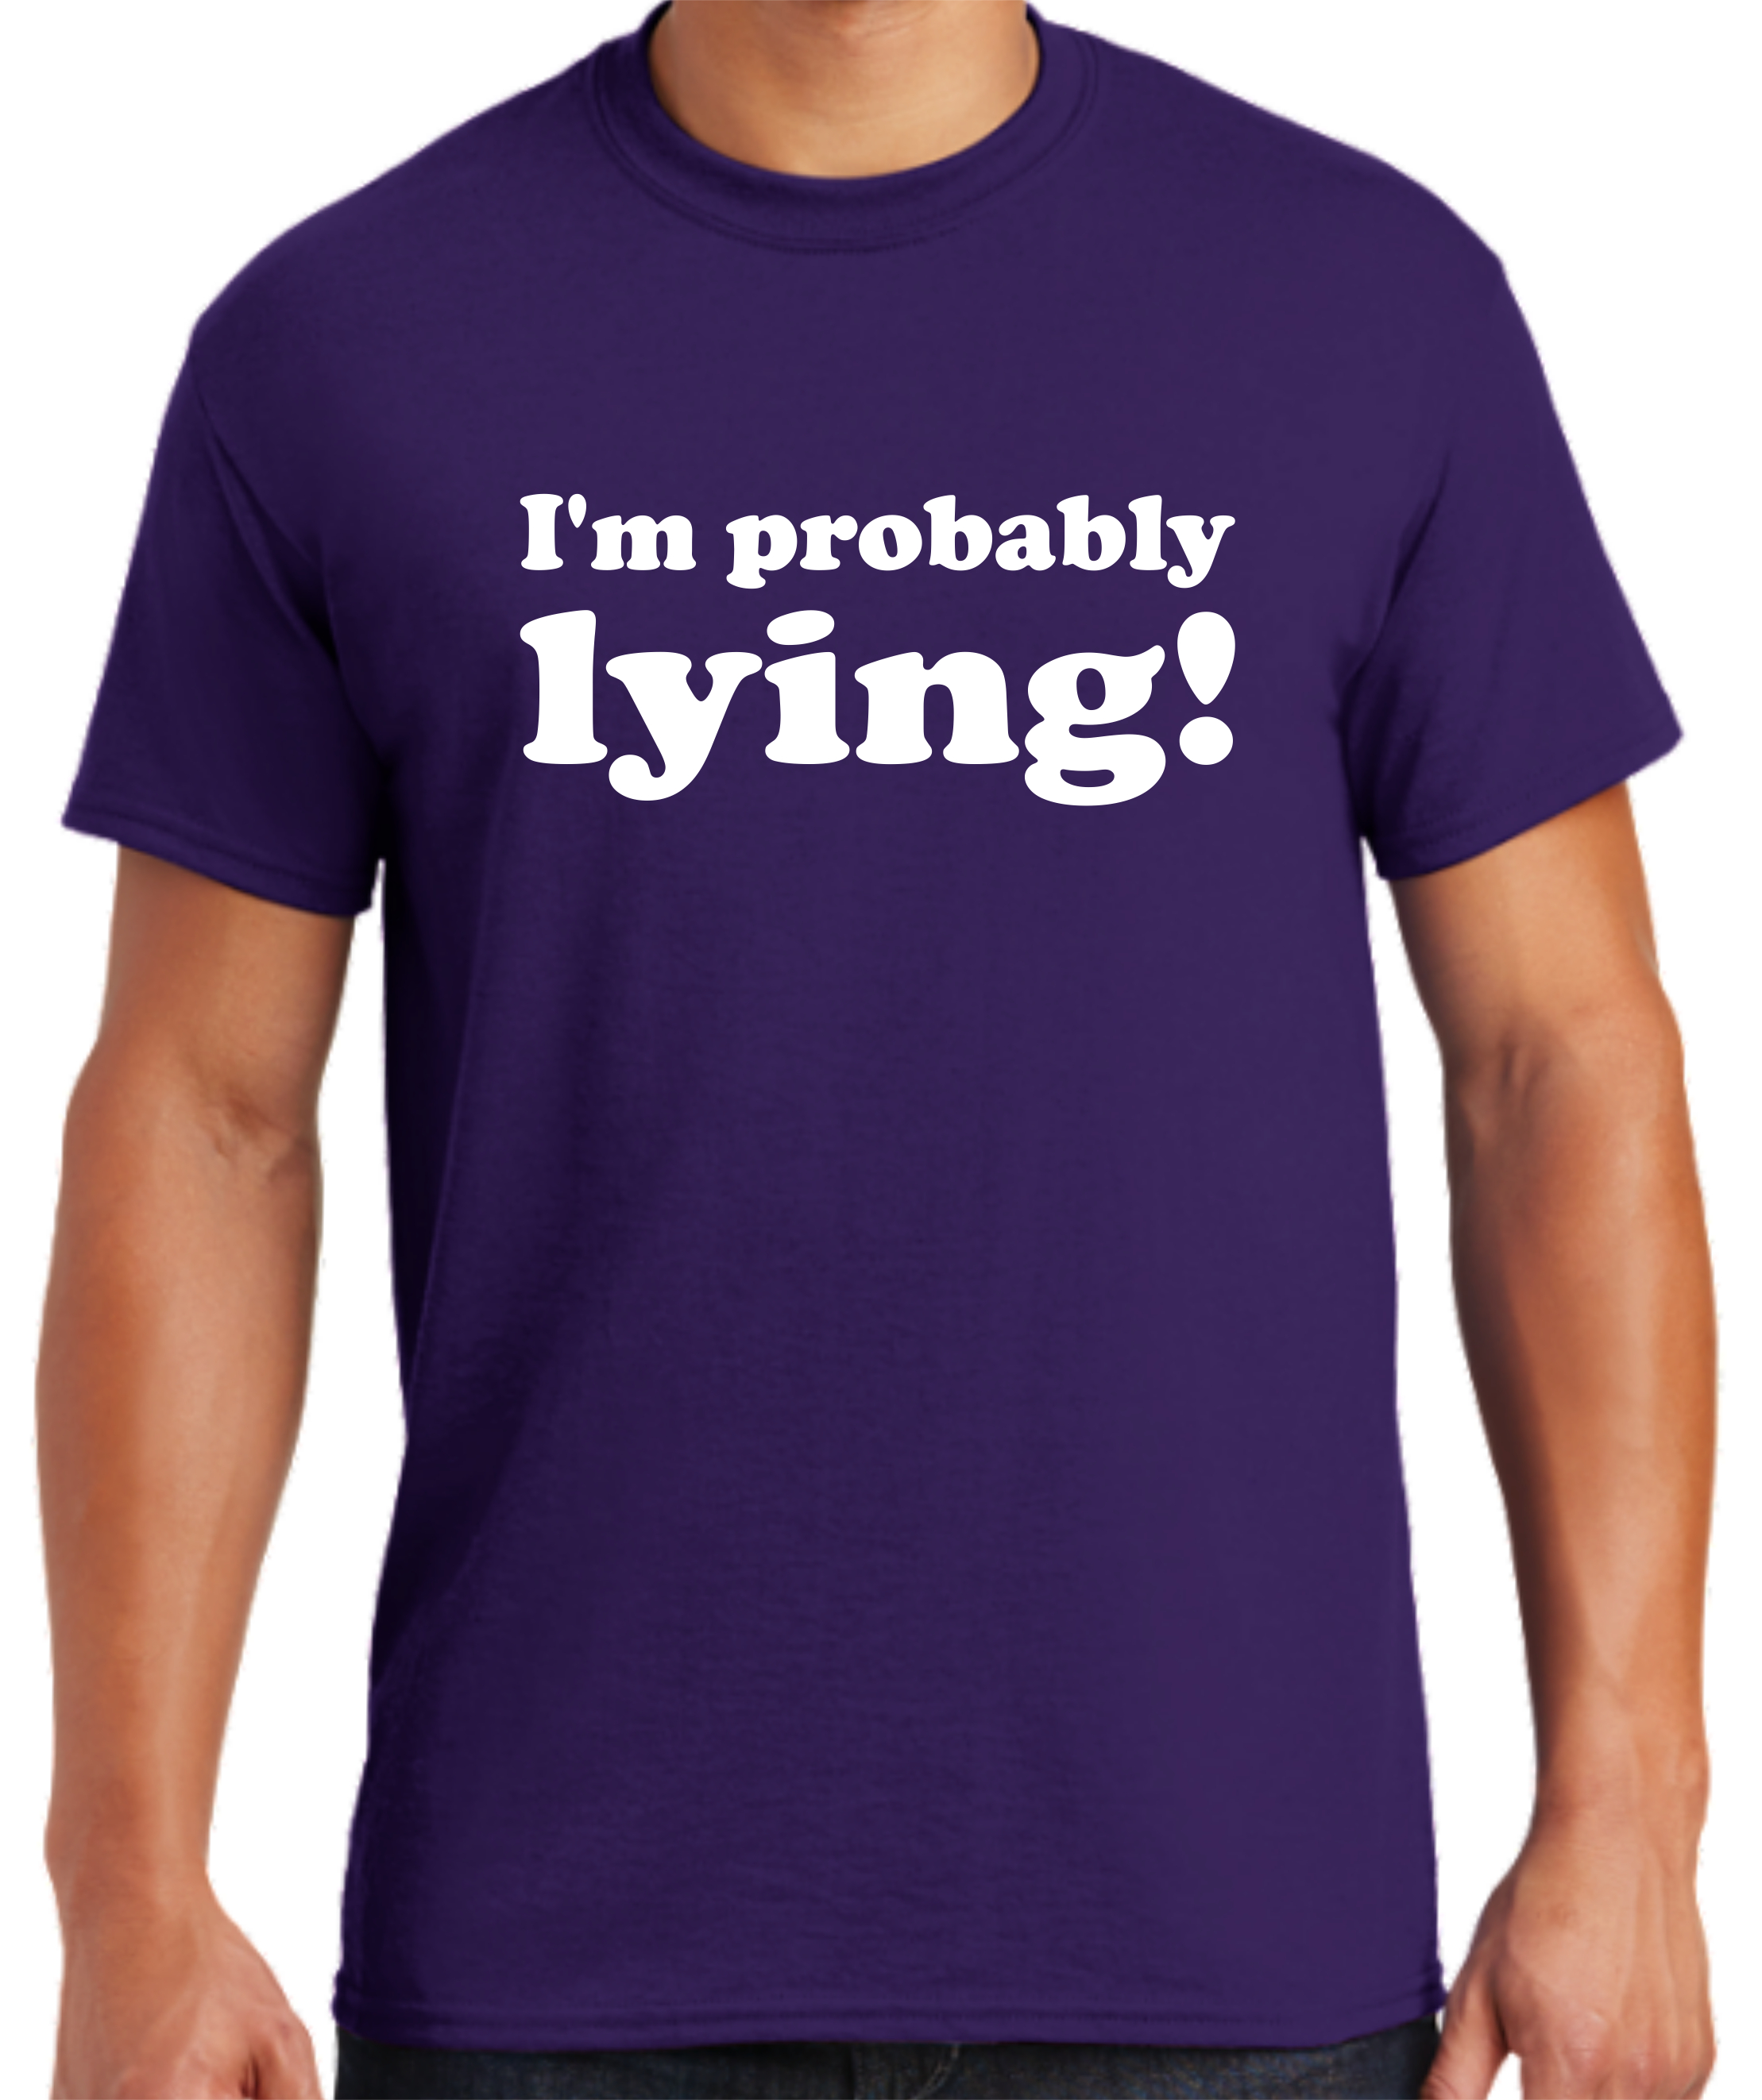 107-61617 - Im probably lying - PURPLE